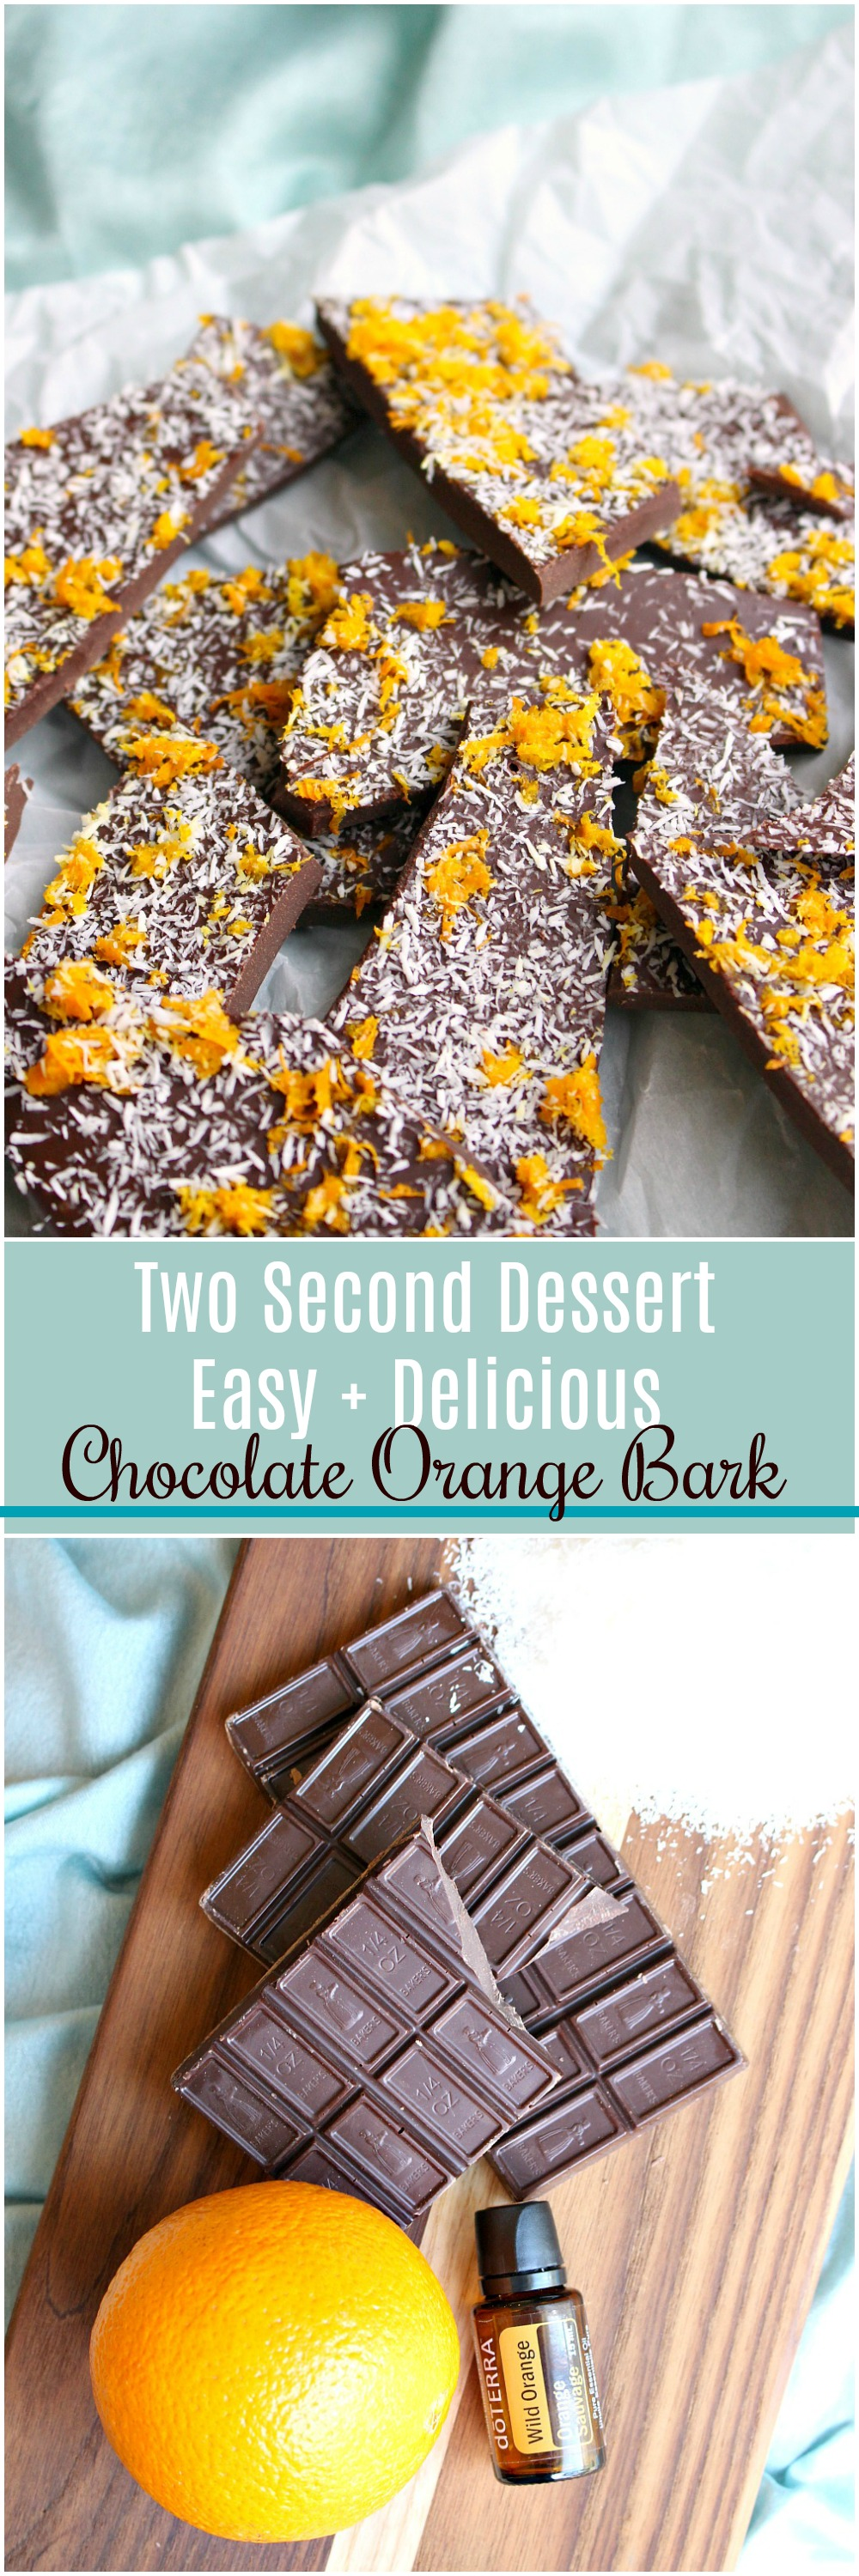 Chocolate Orange Bark with Essential Oils